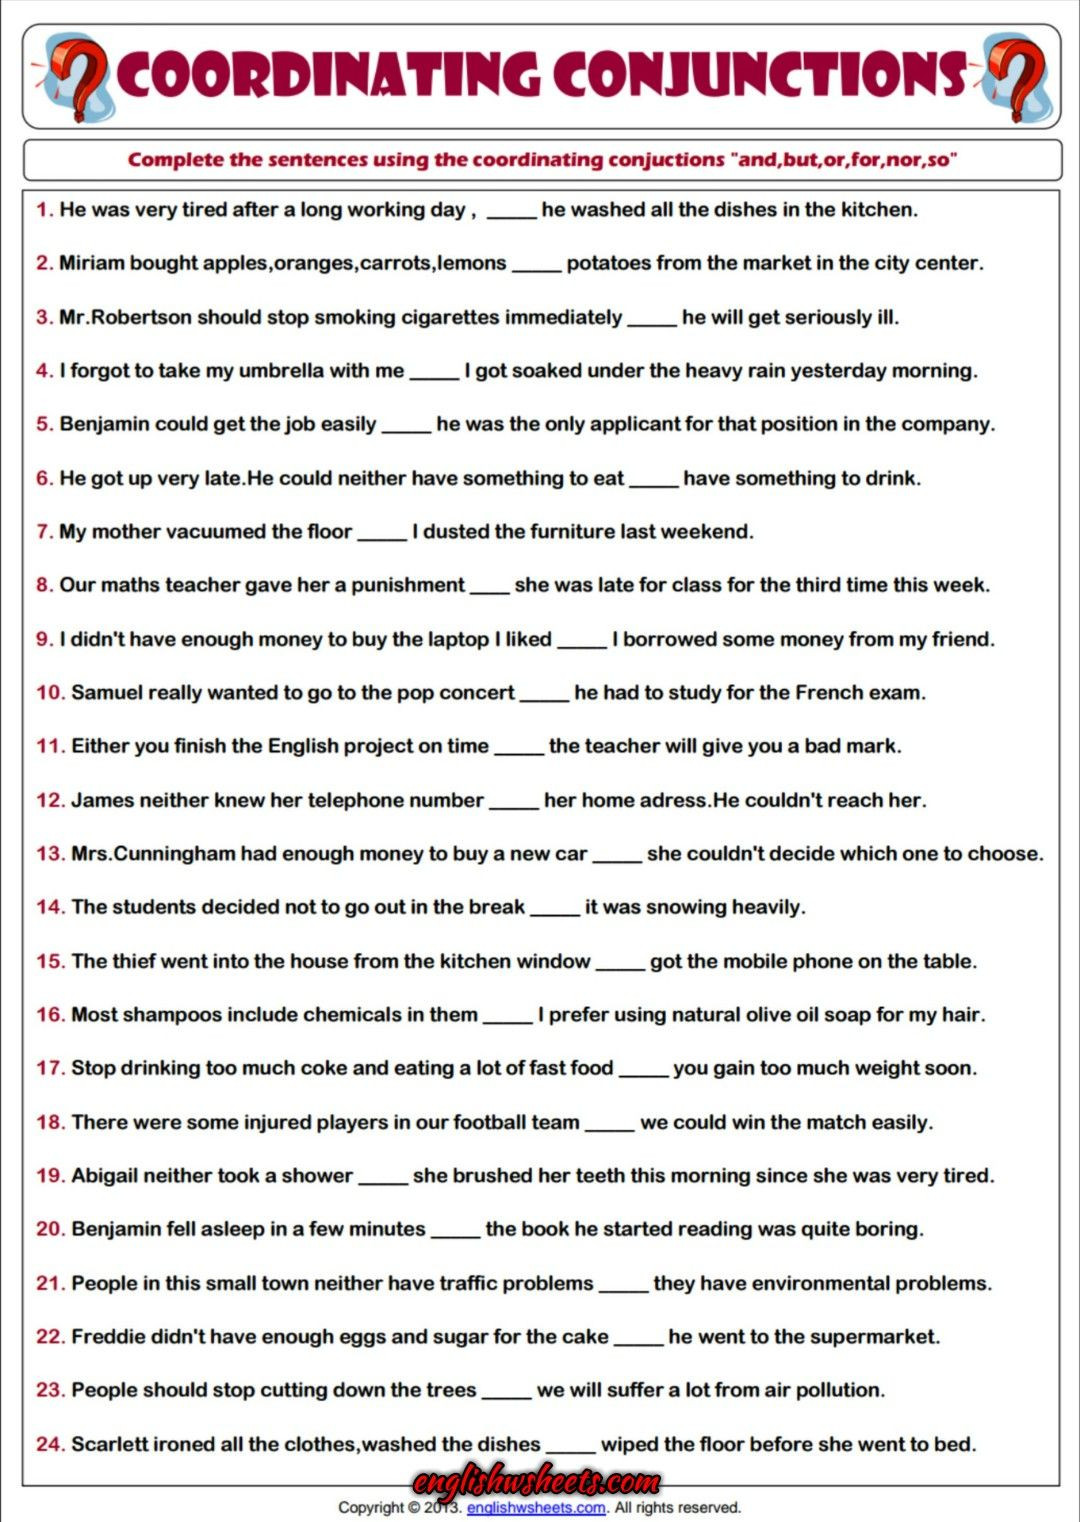 Conjunction Worksheets 6th Grade Coordinating Conjunctions Esl Printable Grammar Worksheet